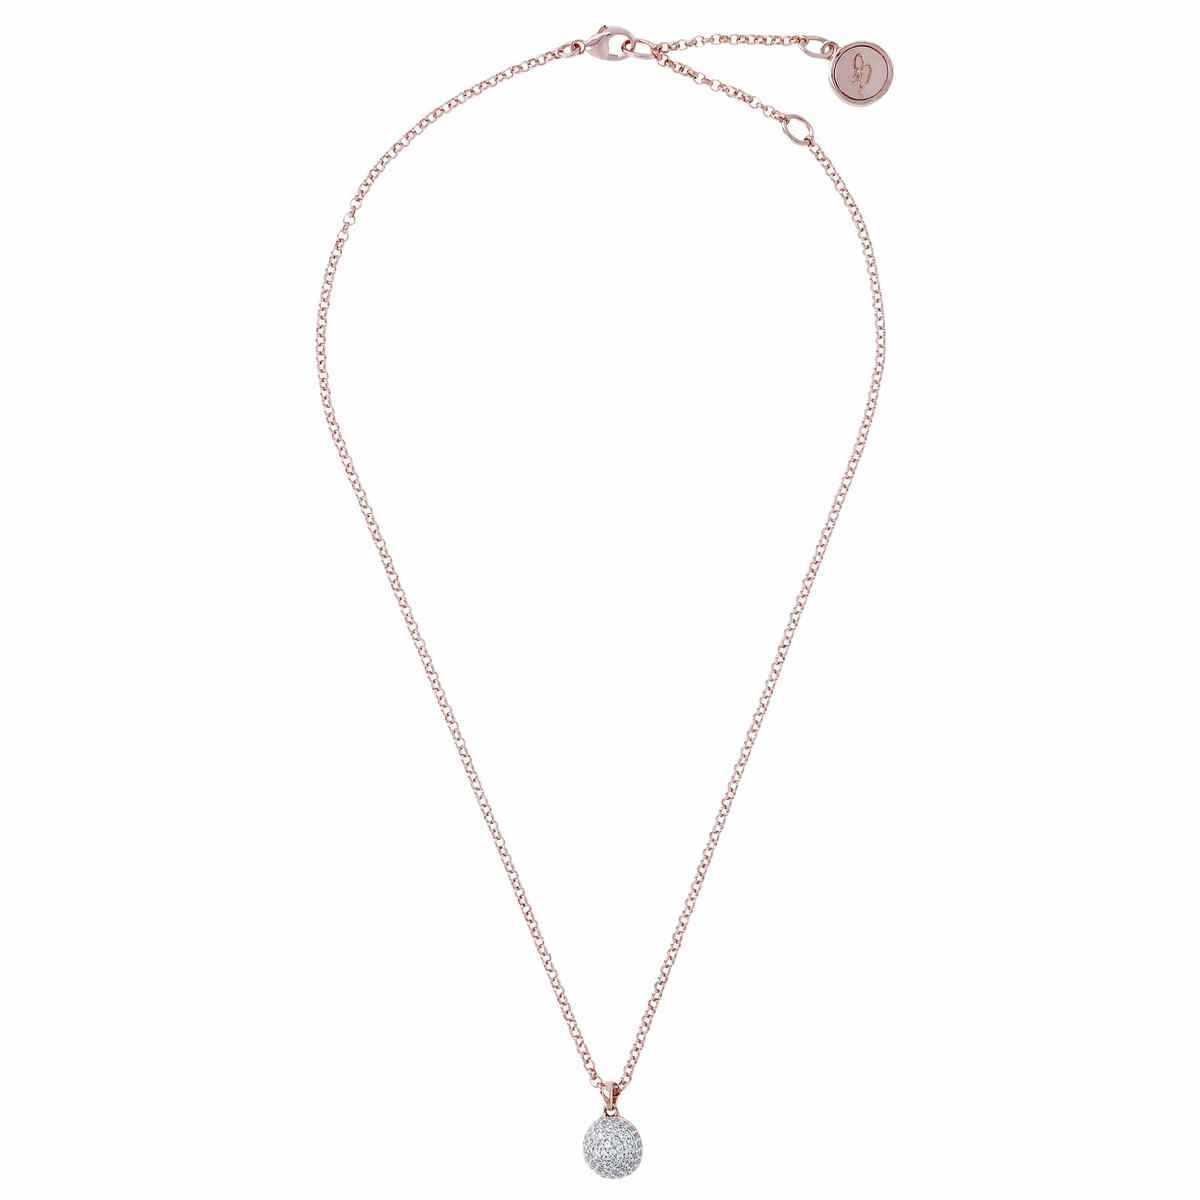 Ball chain necklace CUBIC ZIRCONIA from above